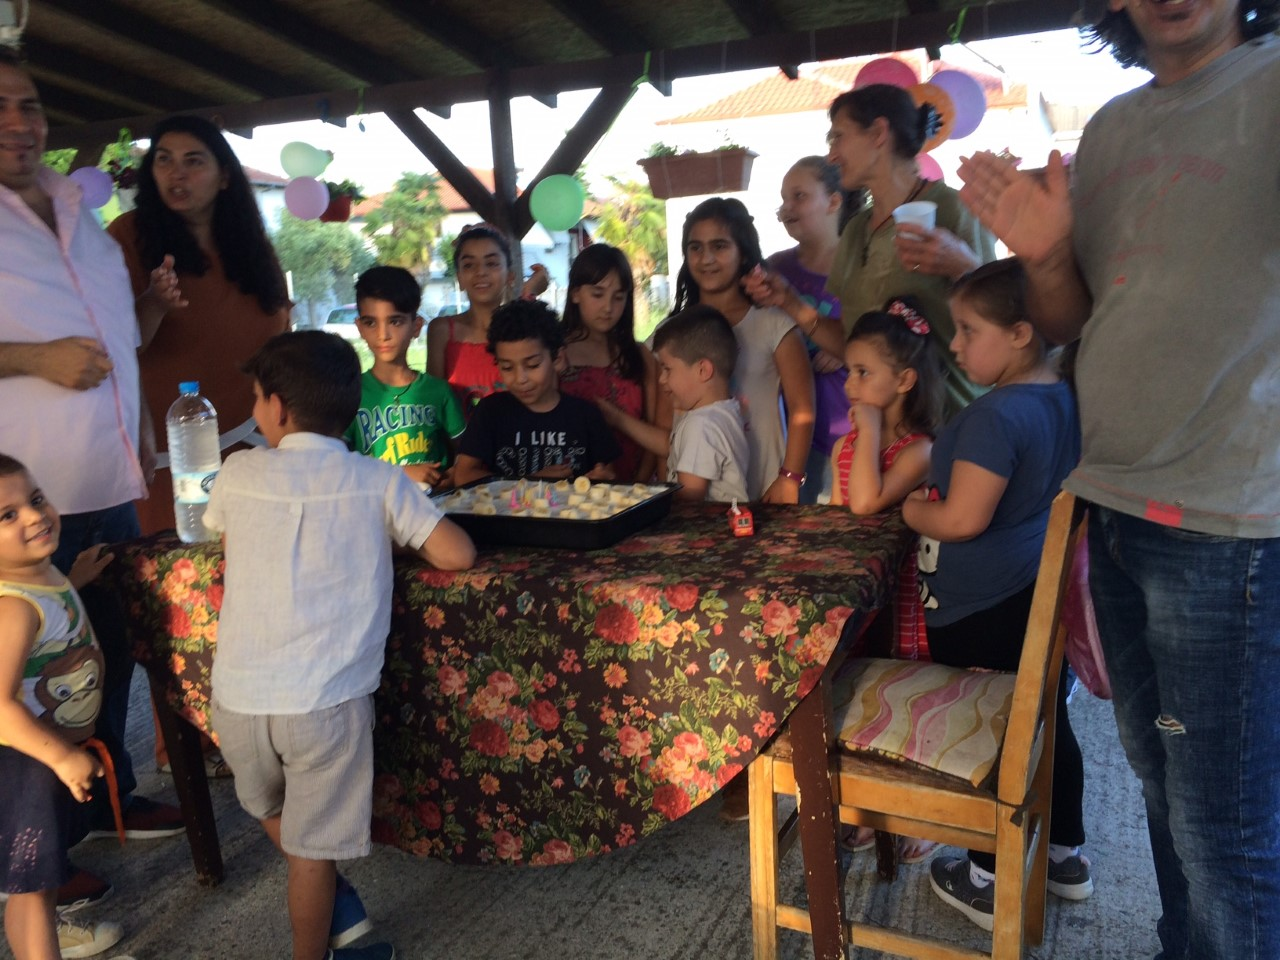 Birthday parties are an opportunity to have informal gatherings with friends and refugee families.